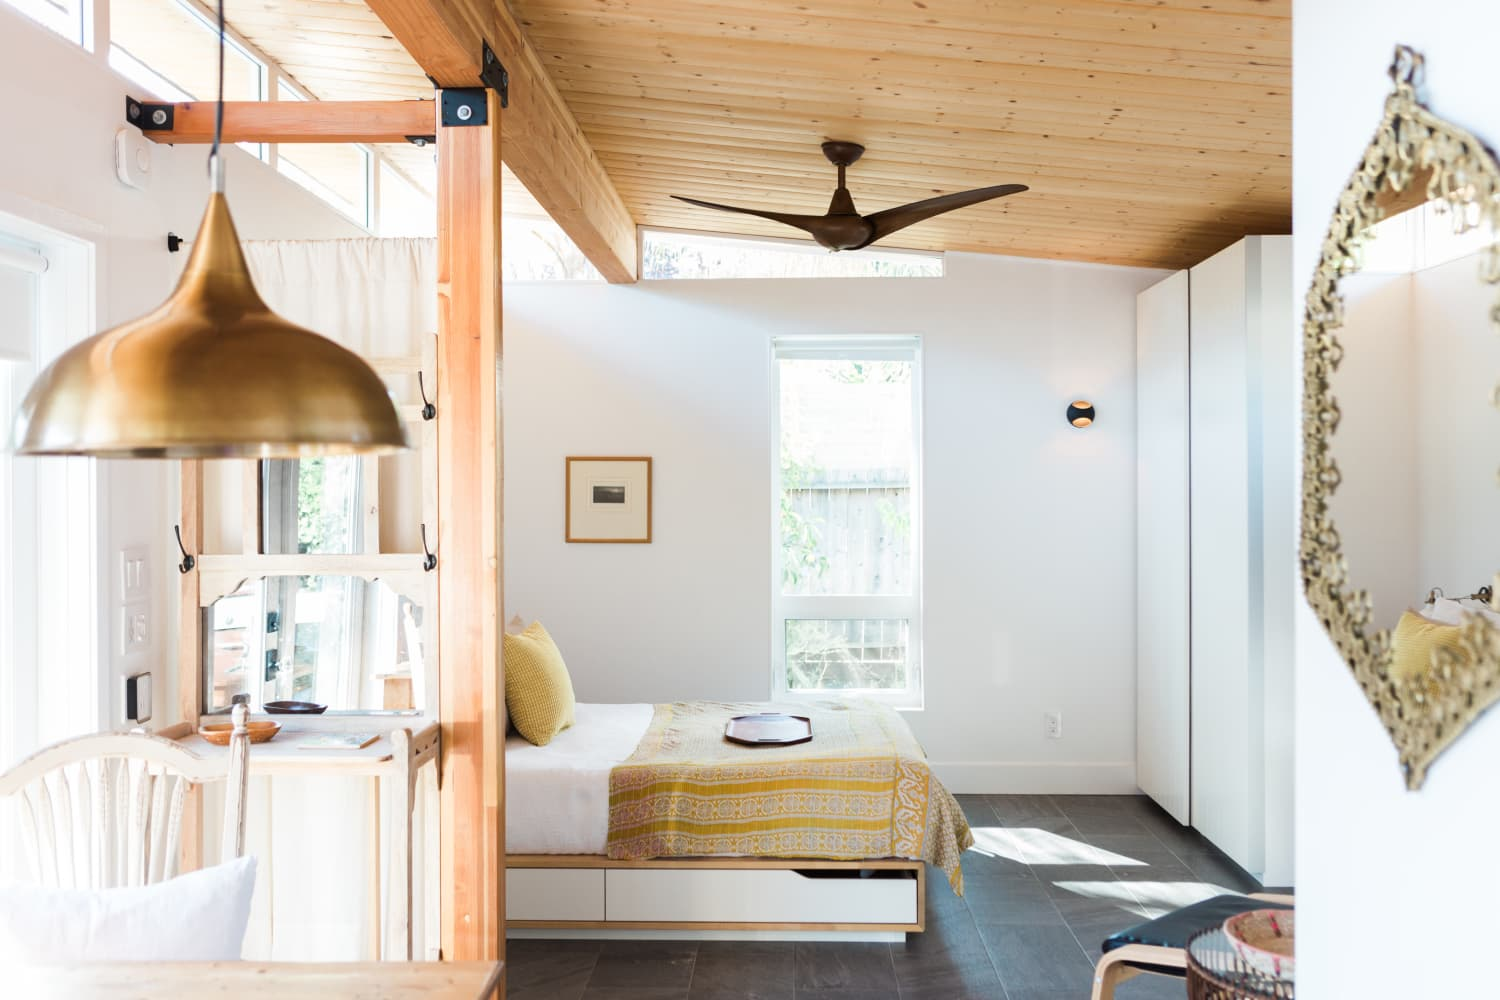 Just 75+ Powerhouse Tiny Homes for You to Daydream About